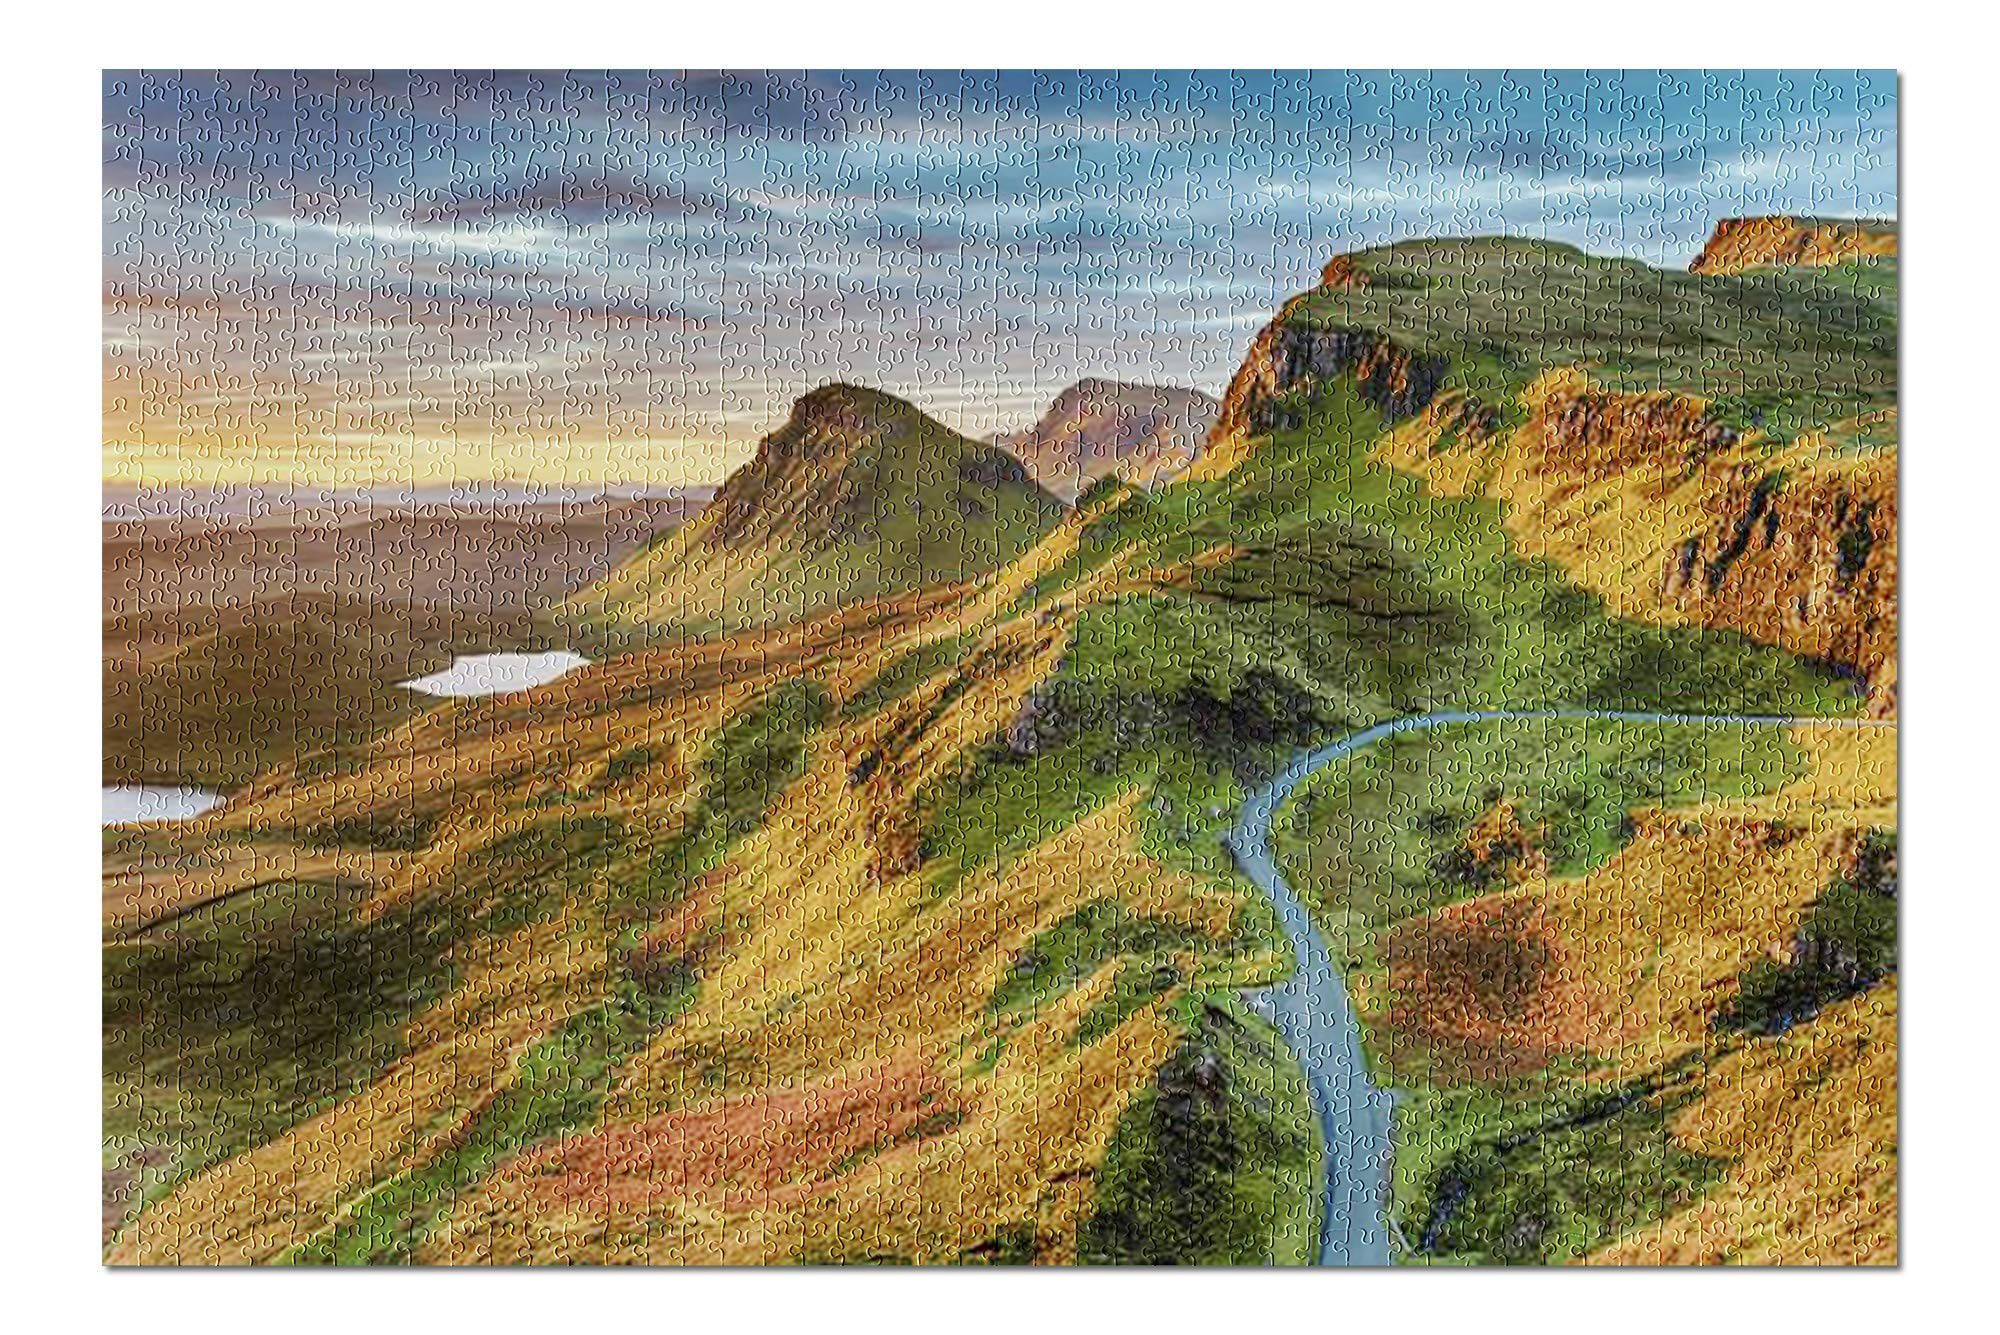 Isle of Skye, Scotland - Beautiful Sunrise Sky Over Rock Formations on The Quiraing with Vibrant Colors 9016764 (Premium 1000 Piece Jigsaw Puzzle for Adults, 20x30, Made in USA!)